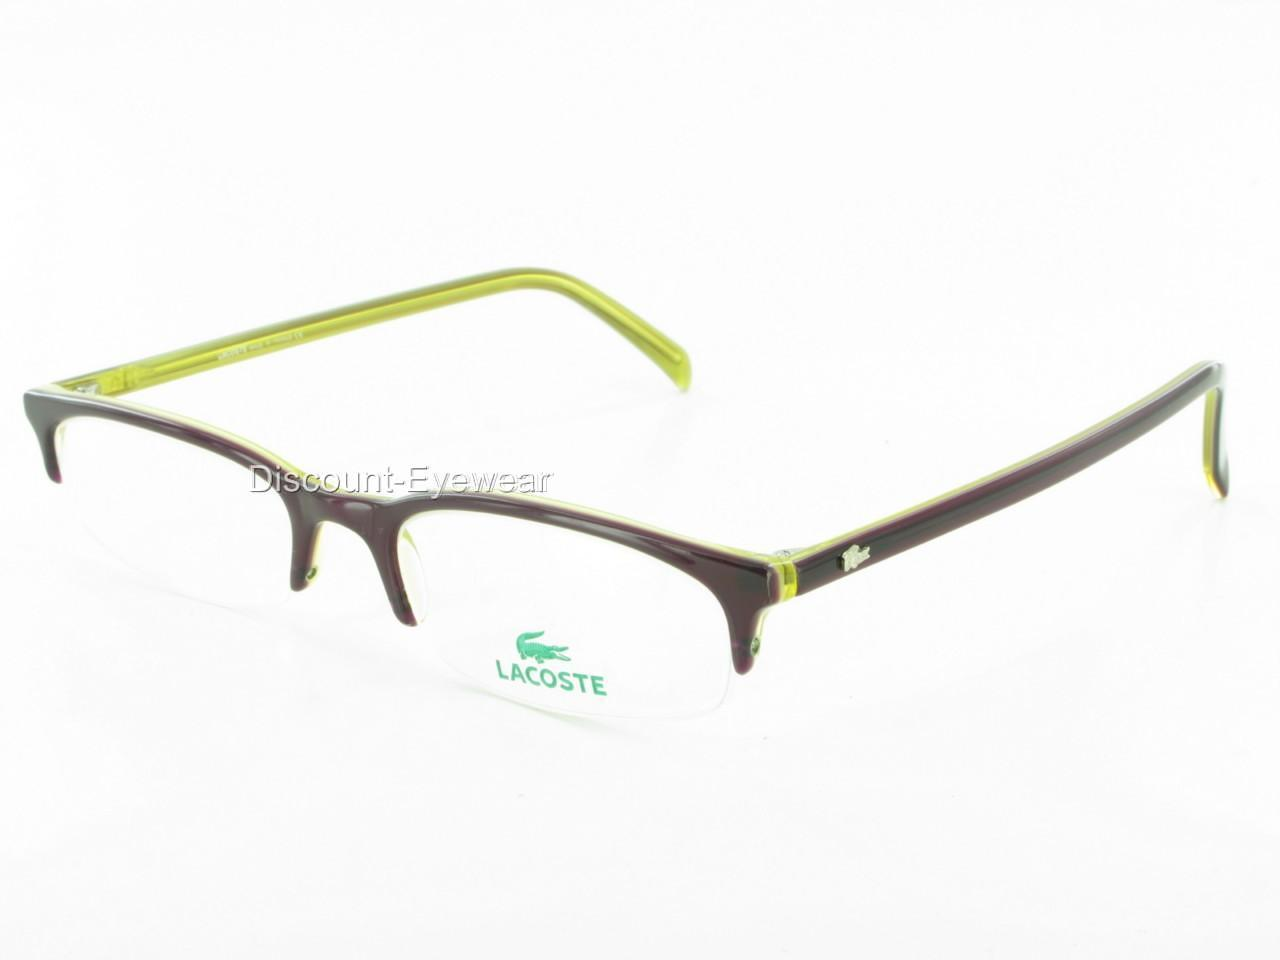 Stylish Designer Semi Rimless LACOSTE 4800 EYEGLASSES eBay